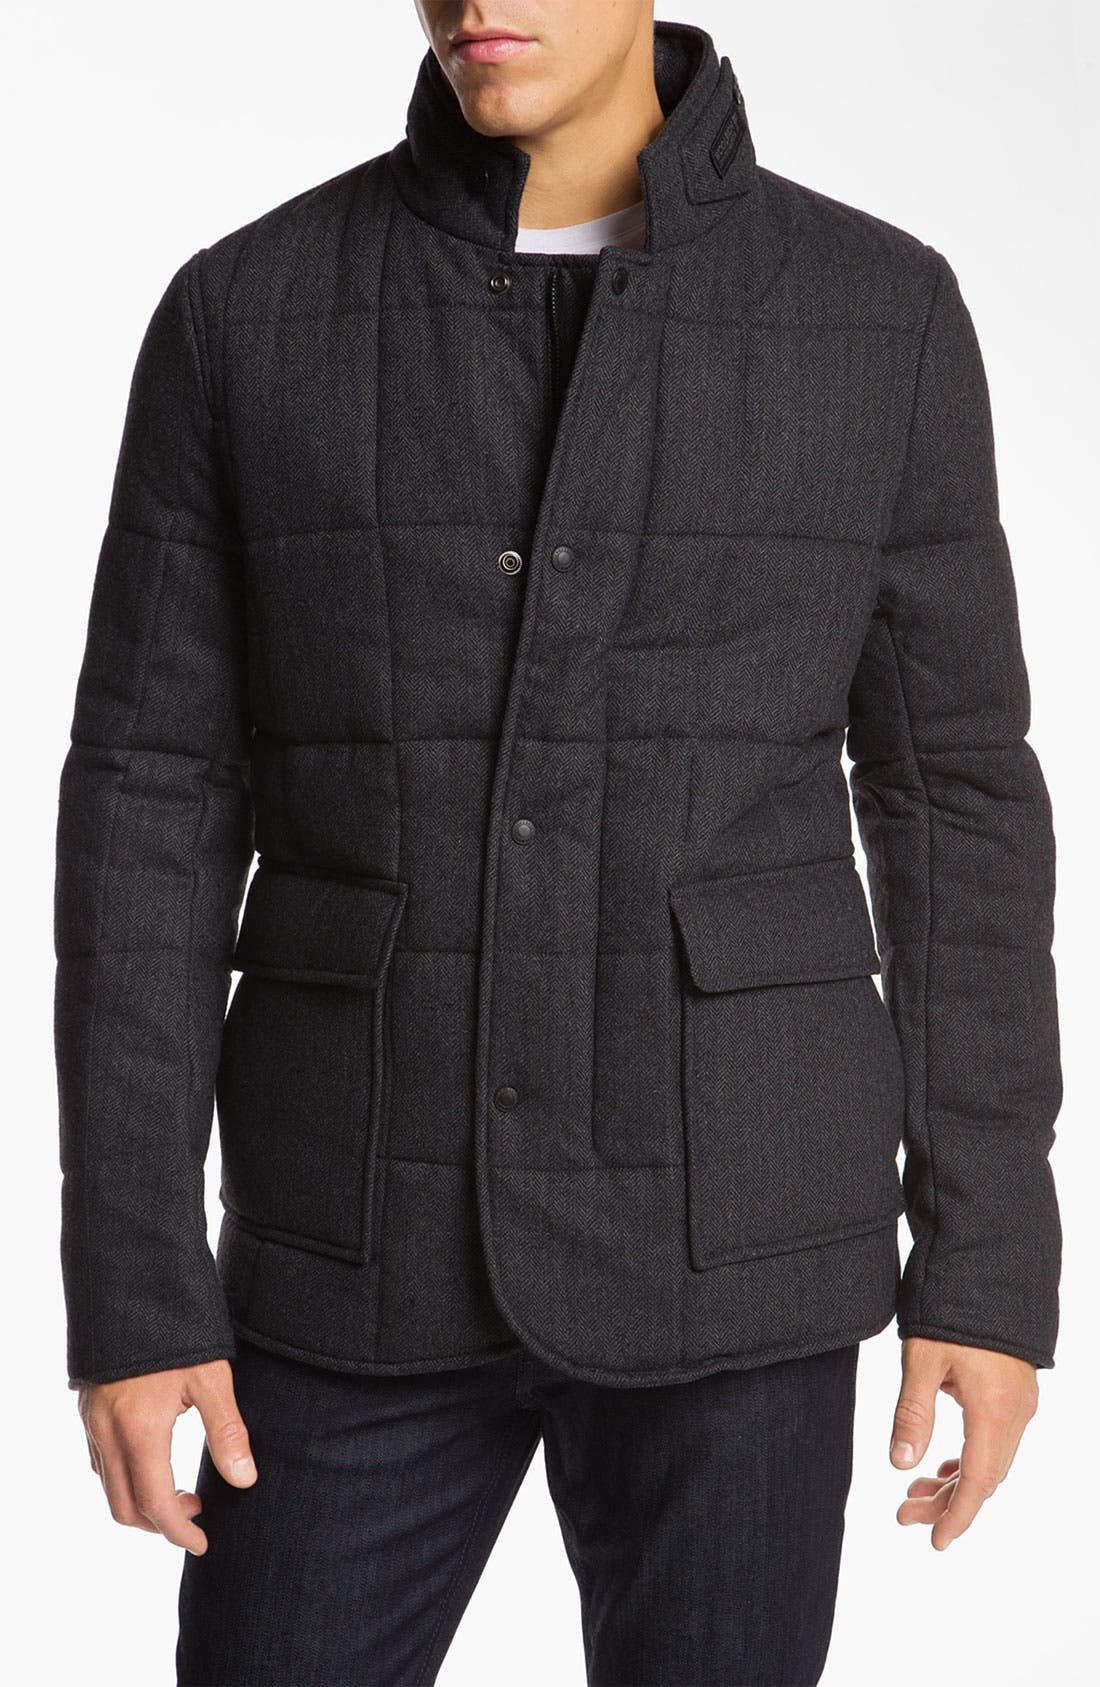 WOOLRICH JOHN RICH Woolrich 'Blizzard' Quilted Jacket, Main, color, 020